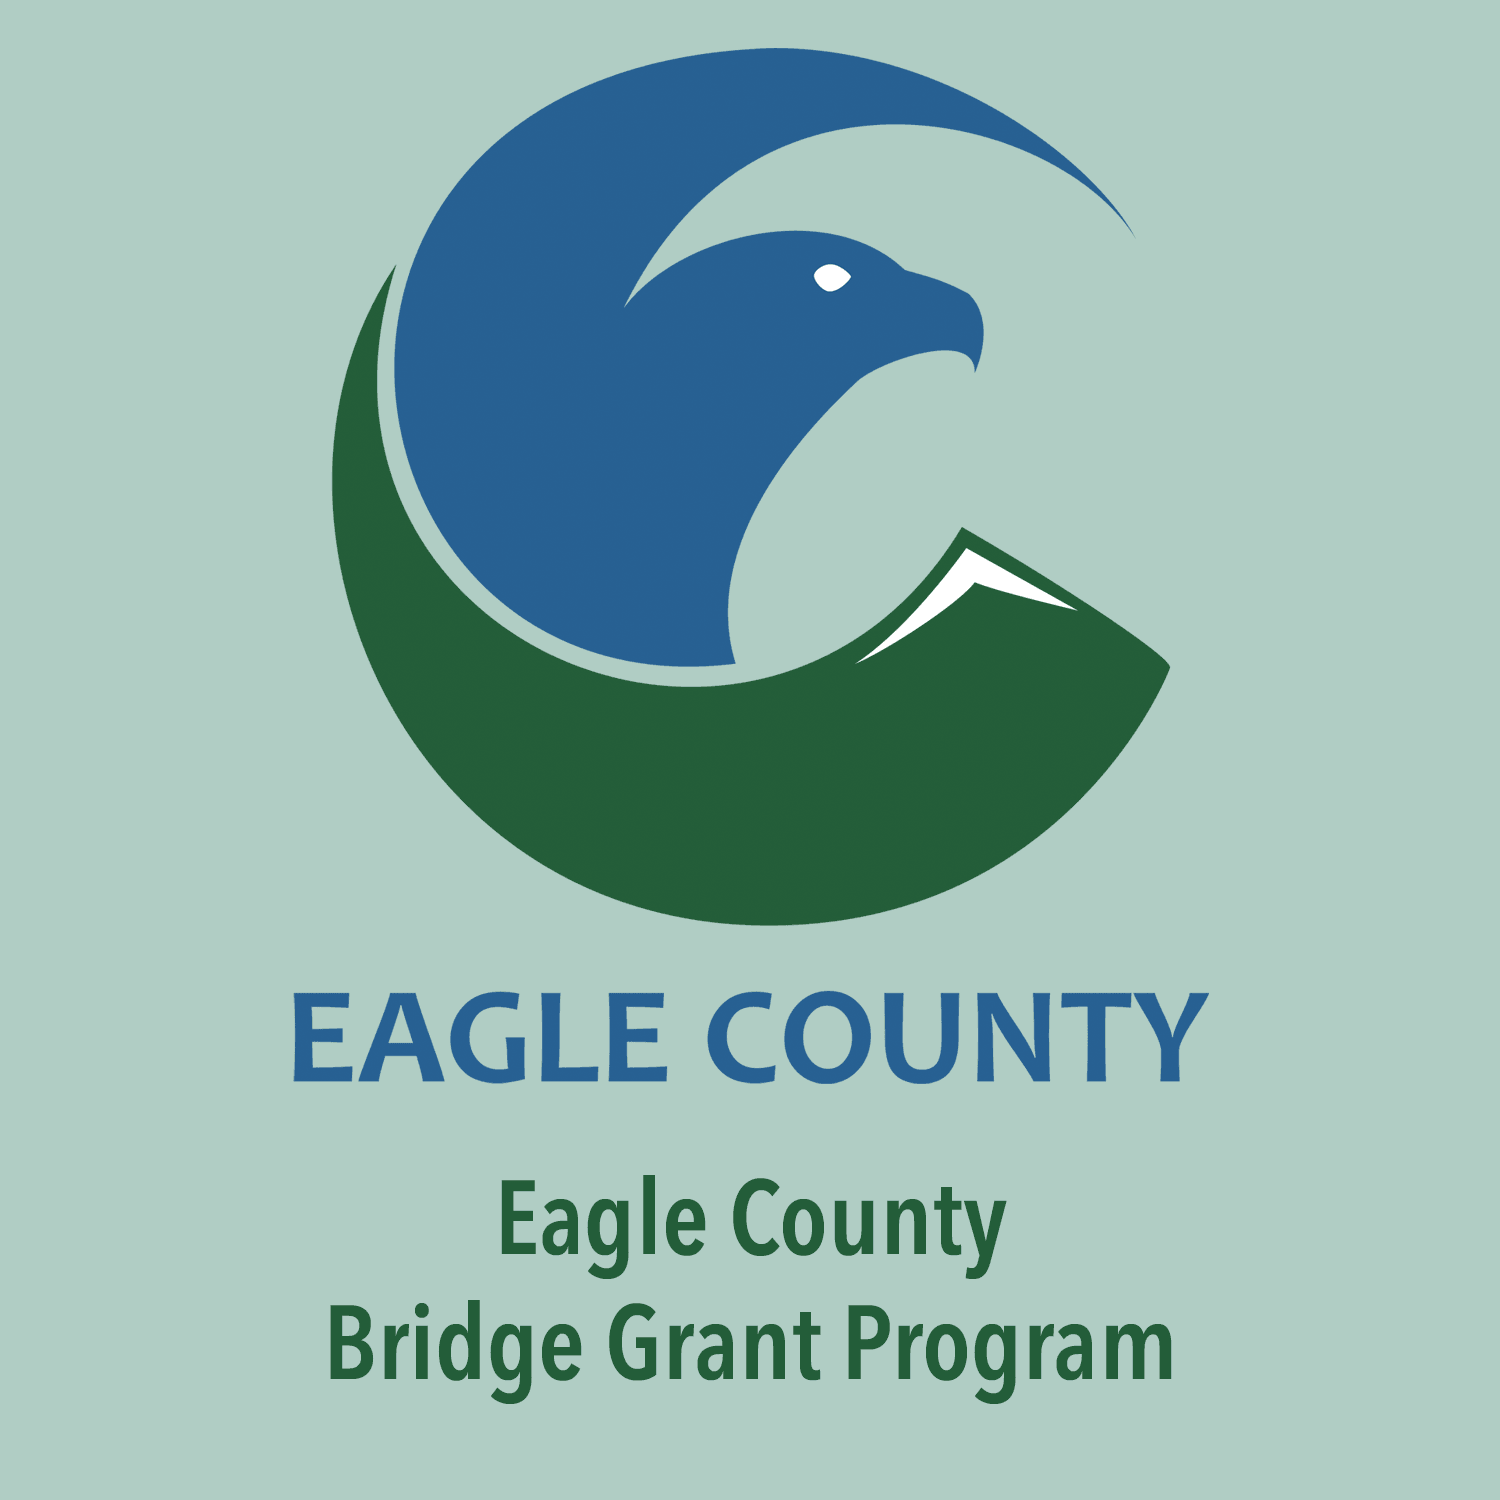 Eagle County Bridge Grant Program